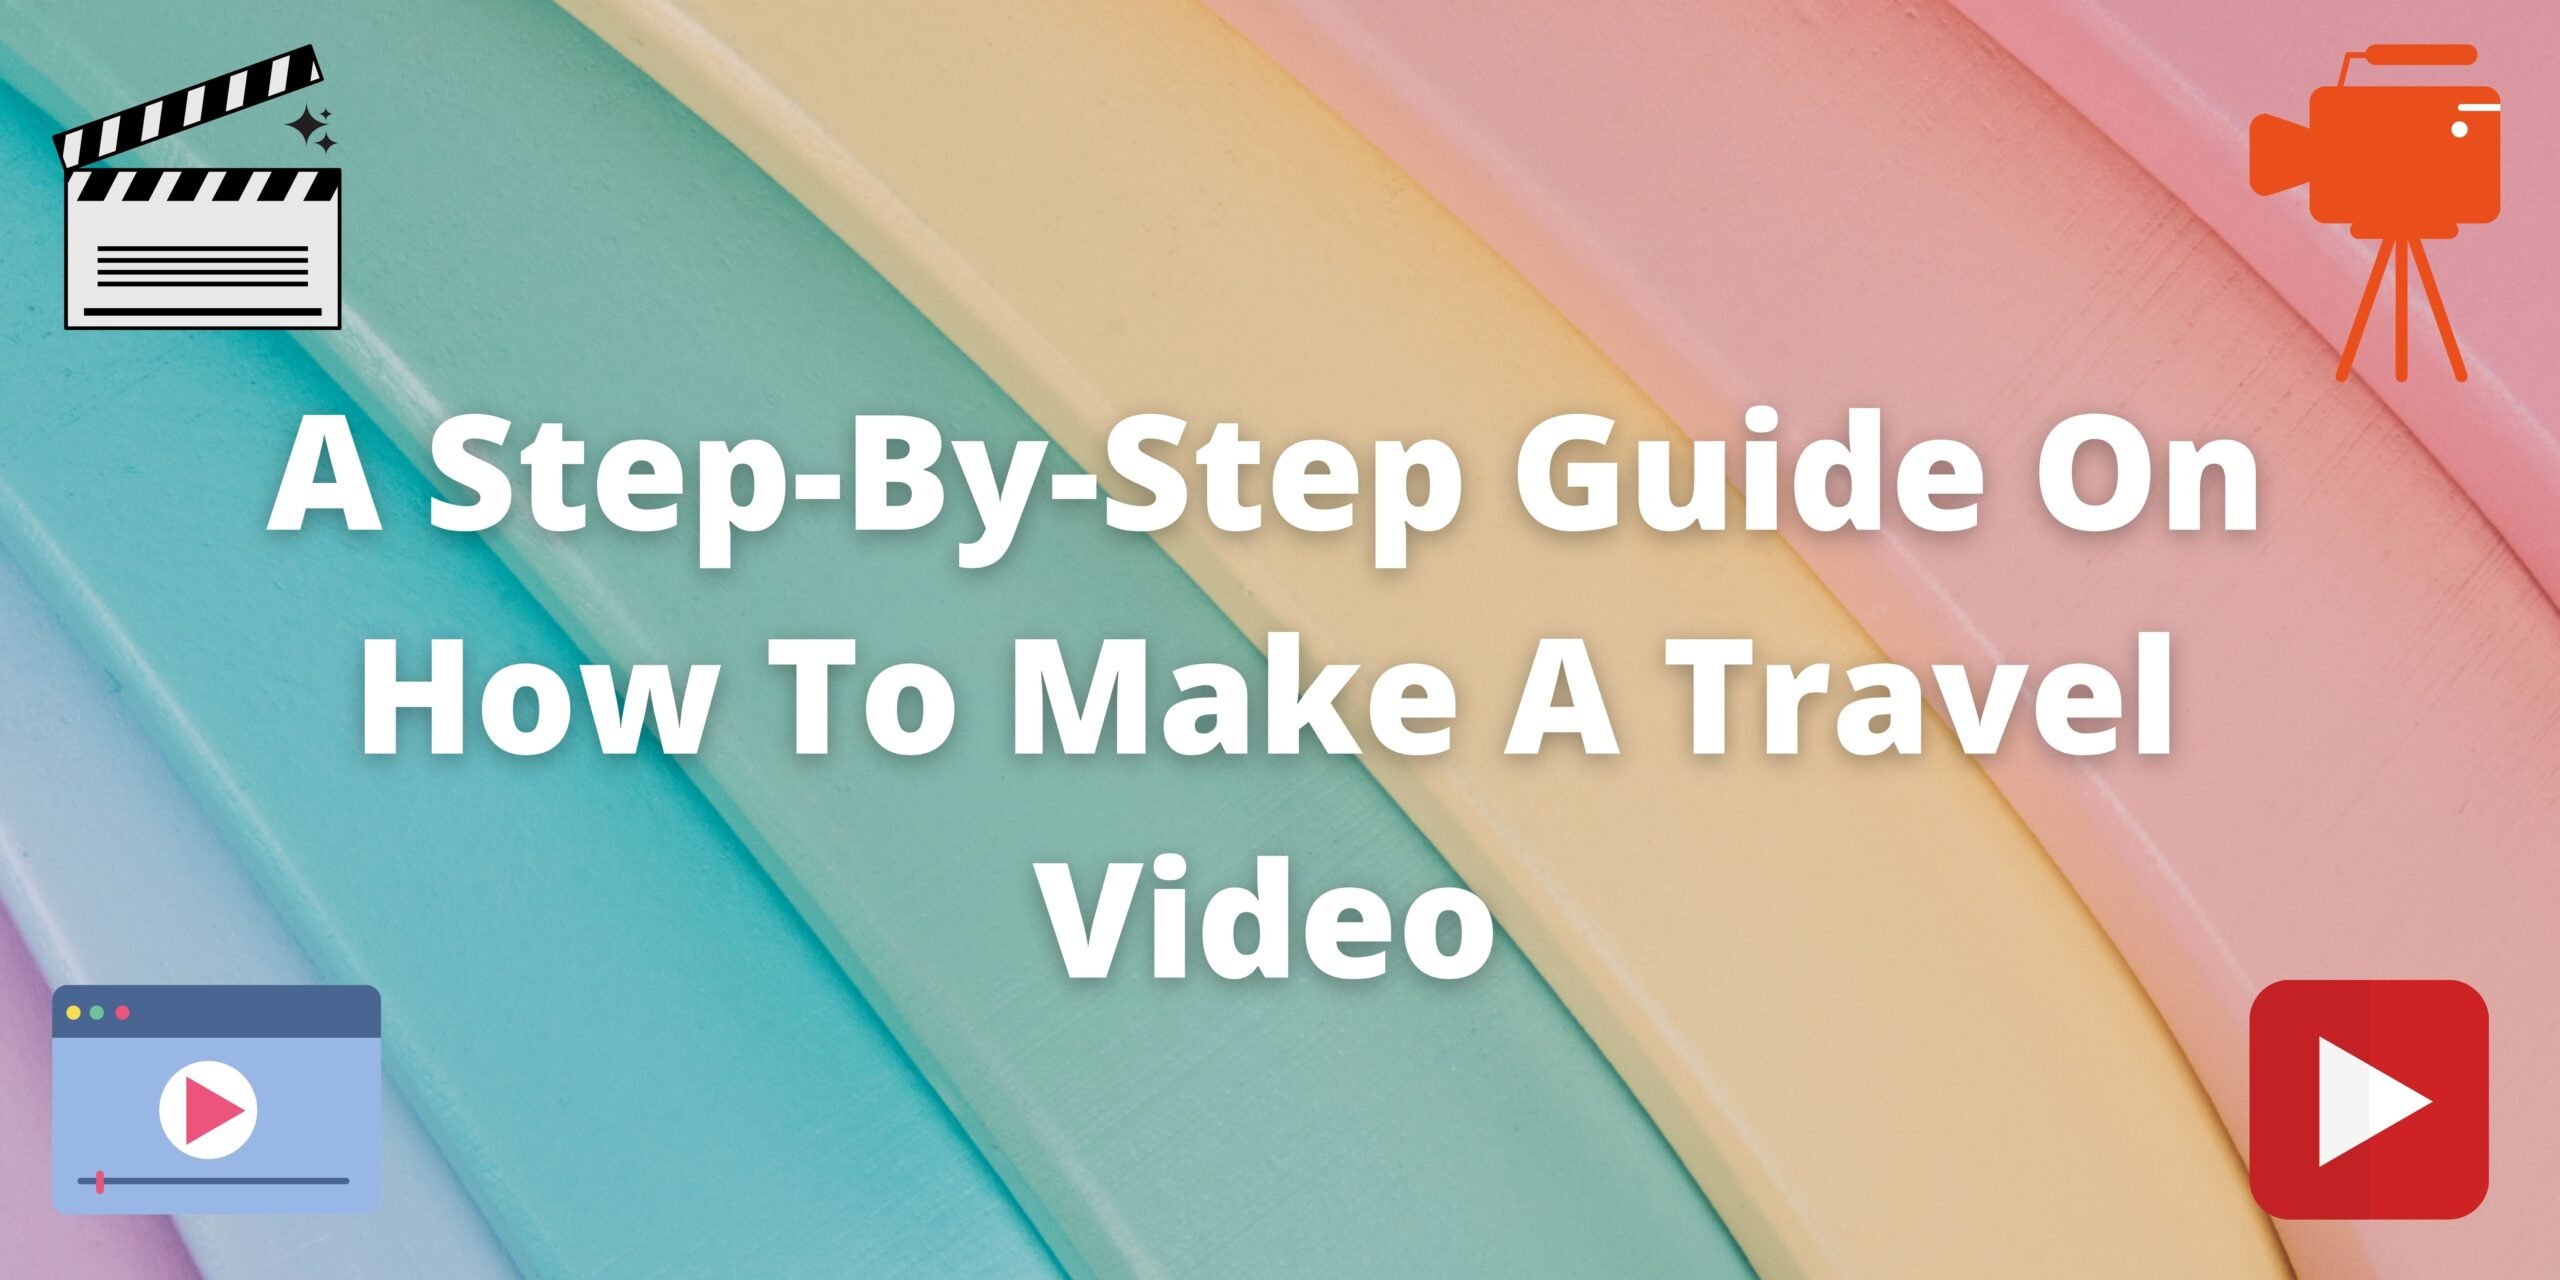 A Step-By-Step Guide On How To Make A Travel Video